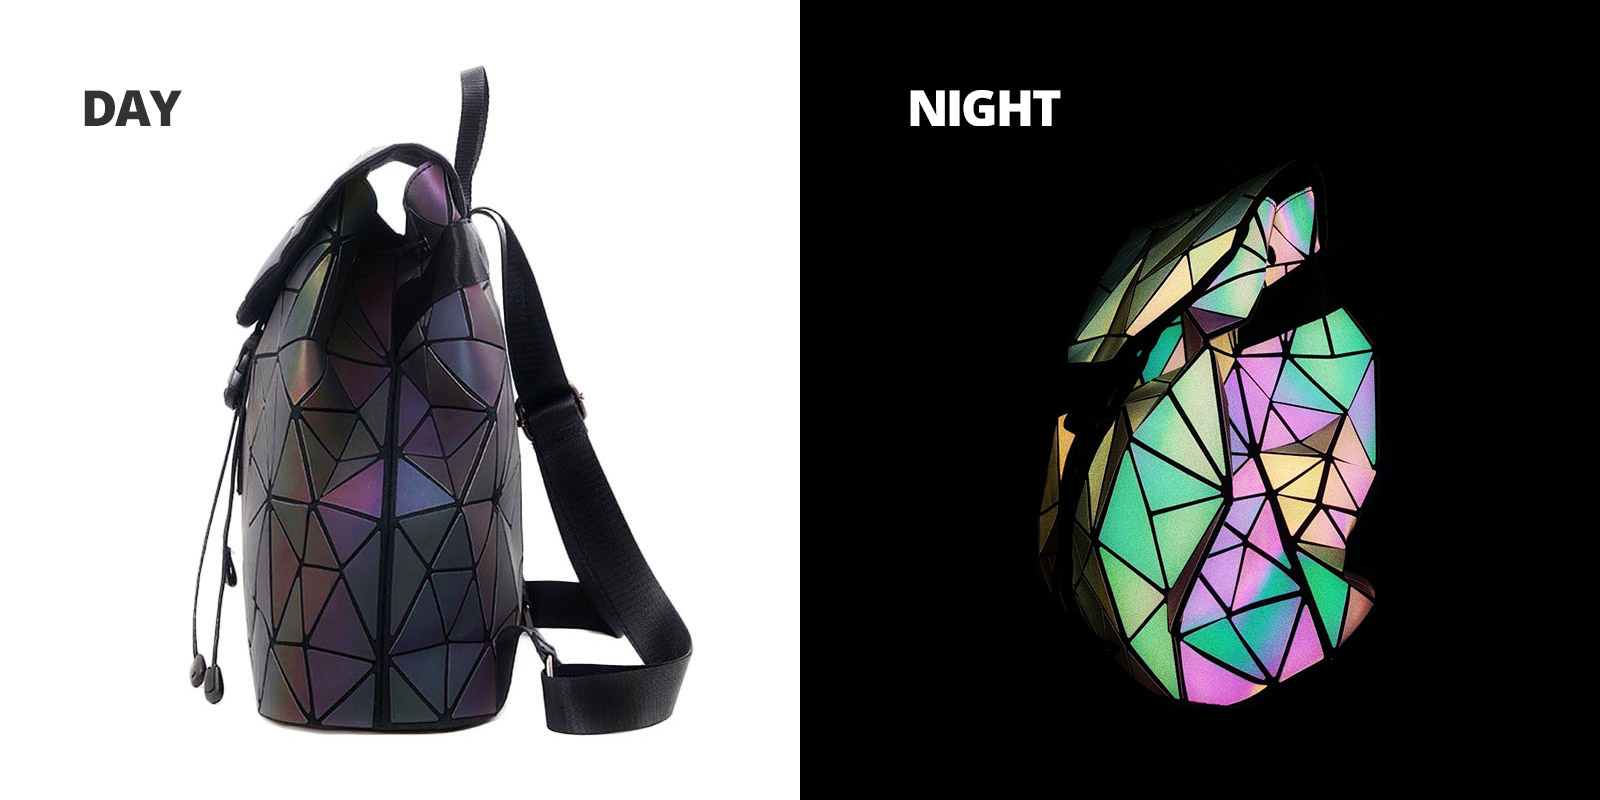 luminous-backpack-diamond-lattice-reflective-geometric-glowing-back-pack-details-day-night (1)